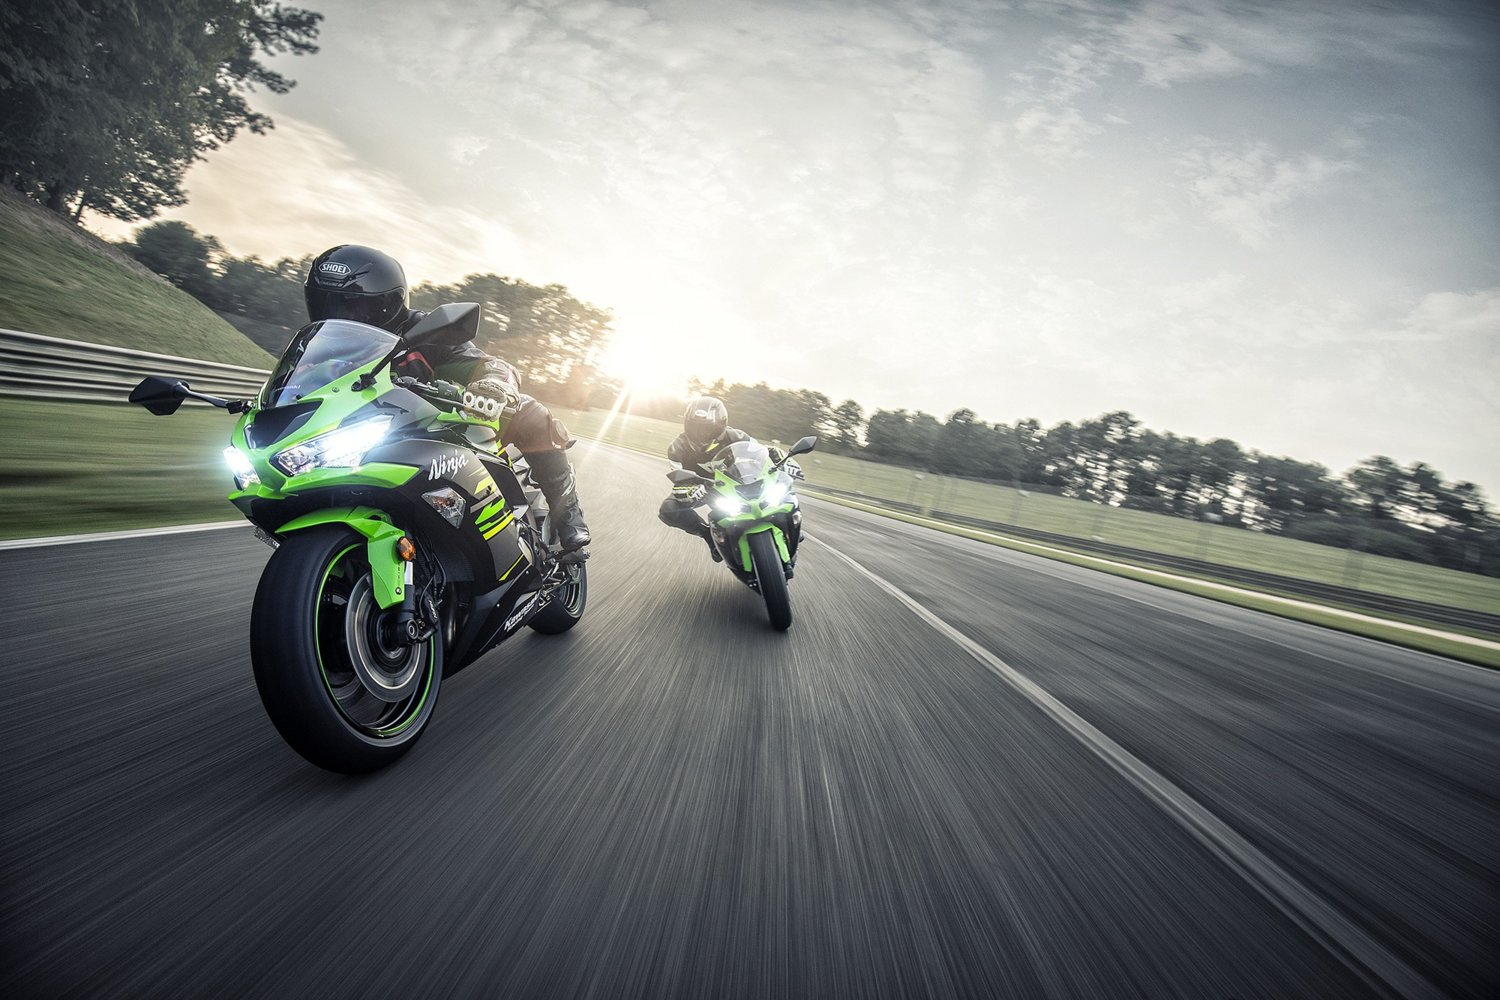 Ninth generation of the Ninja ZX-6R shows its new face